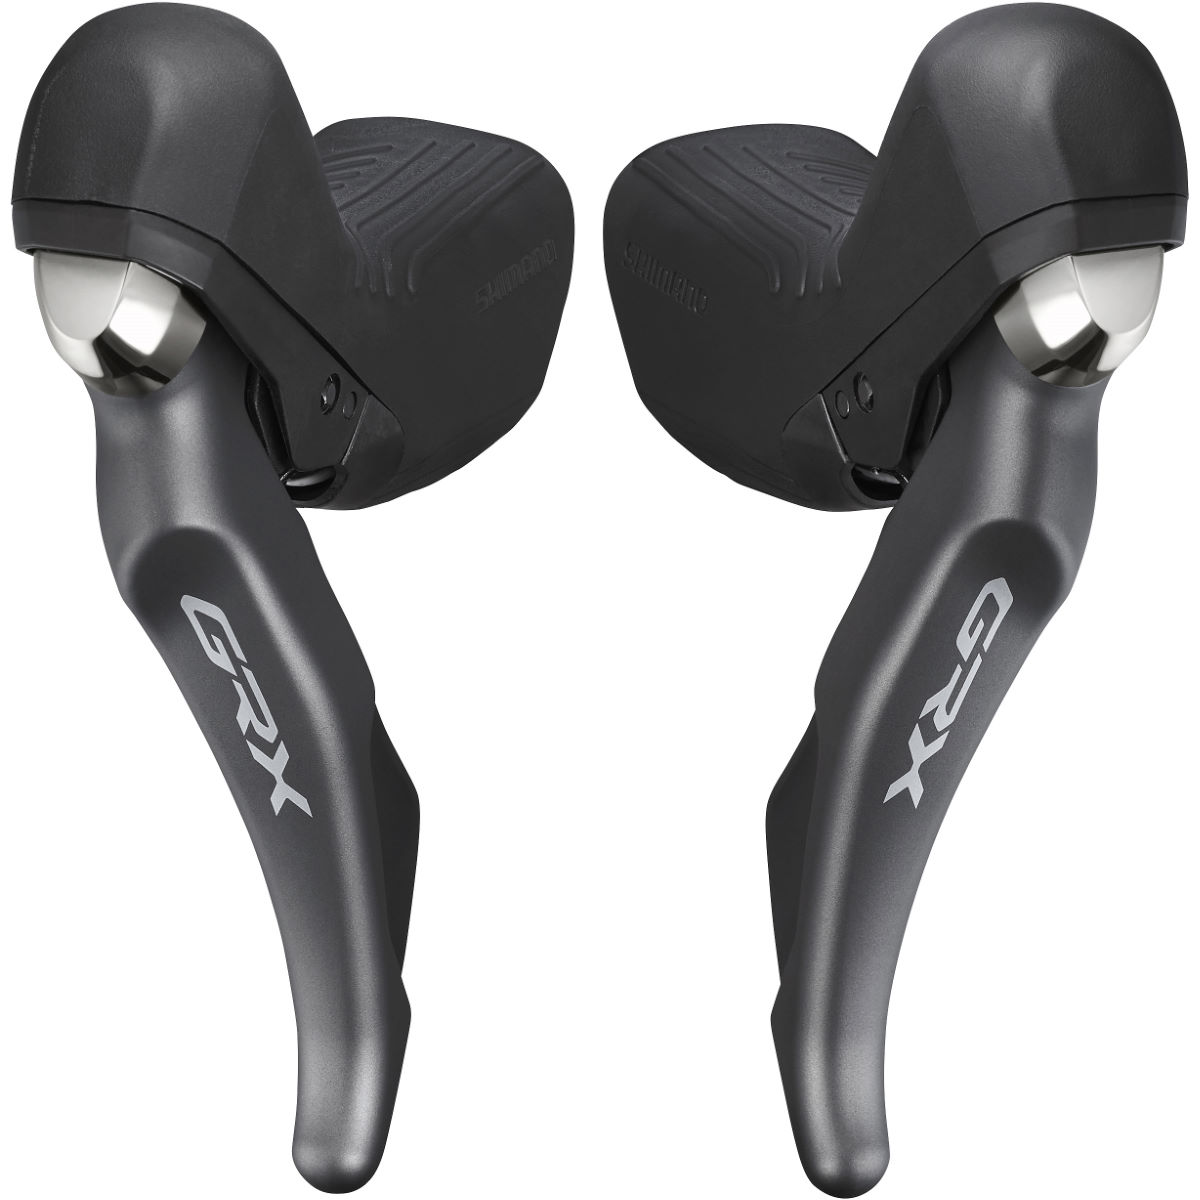 Shimano RX810 2x11 Speed Shifter Set   Gear Levers